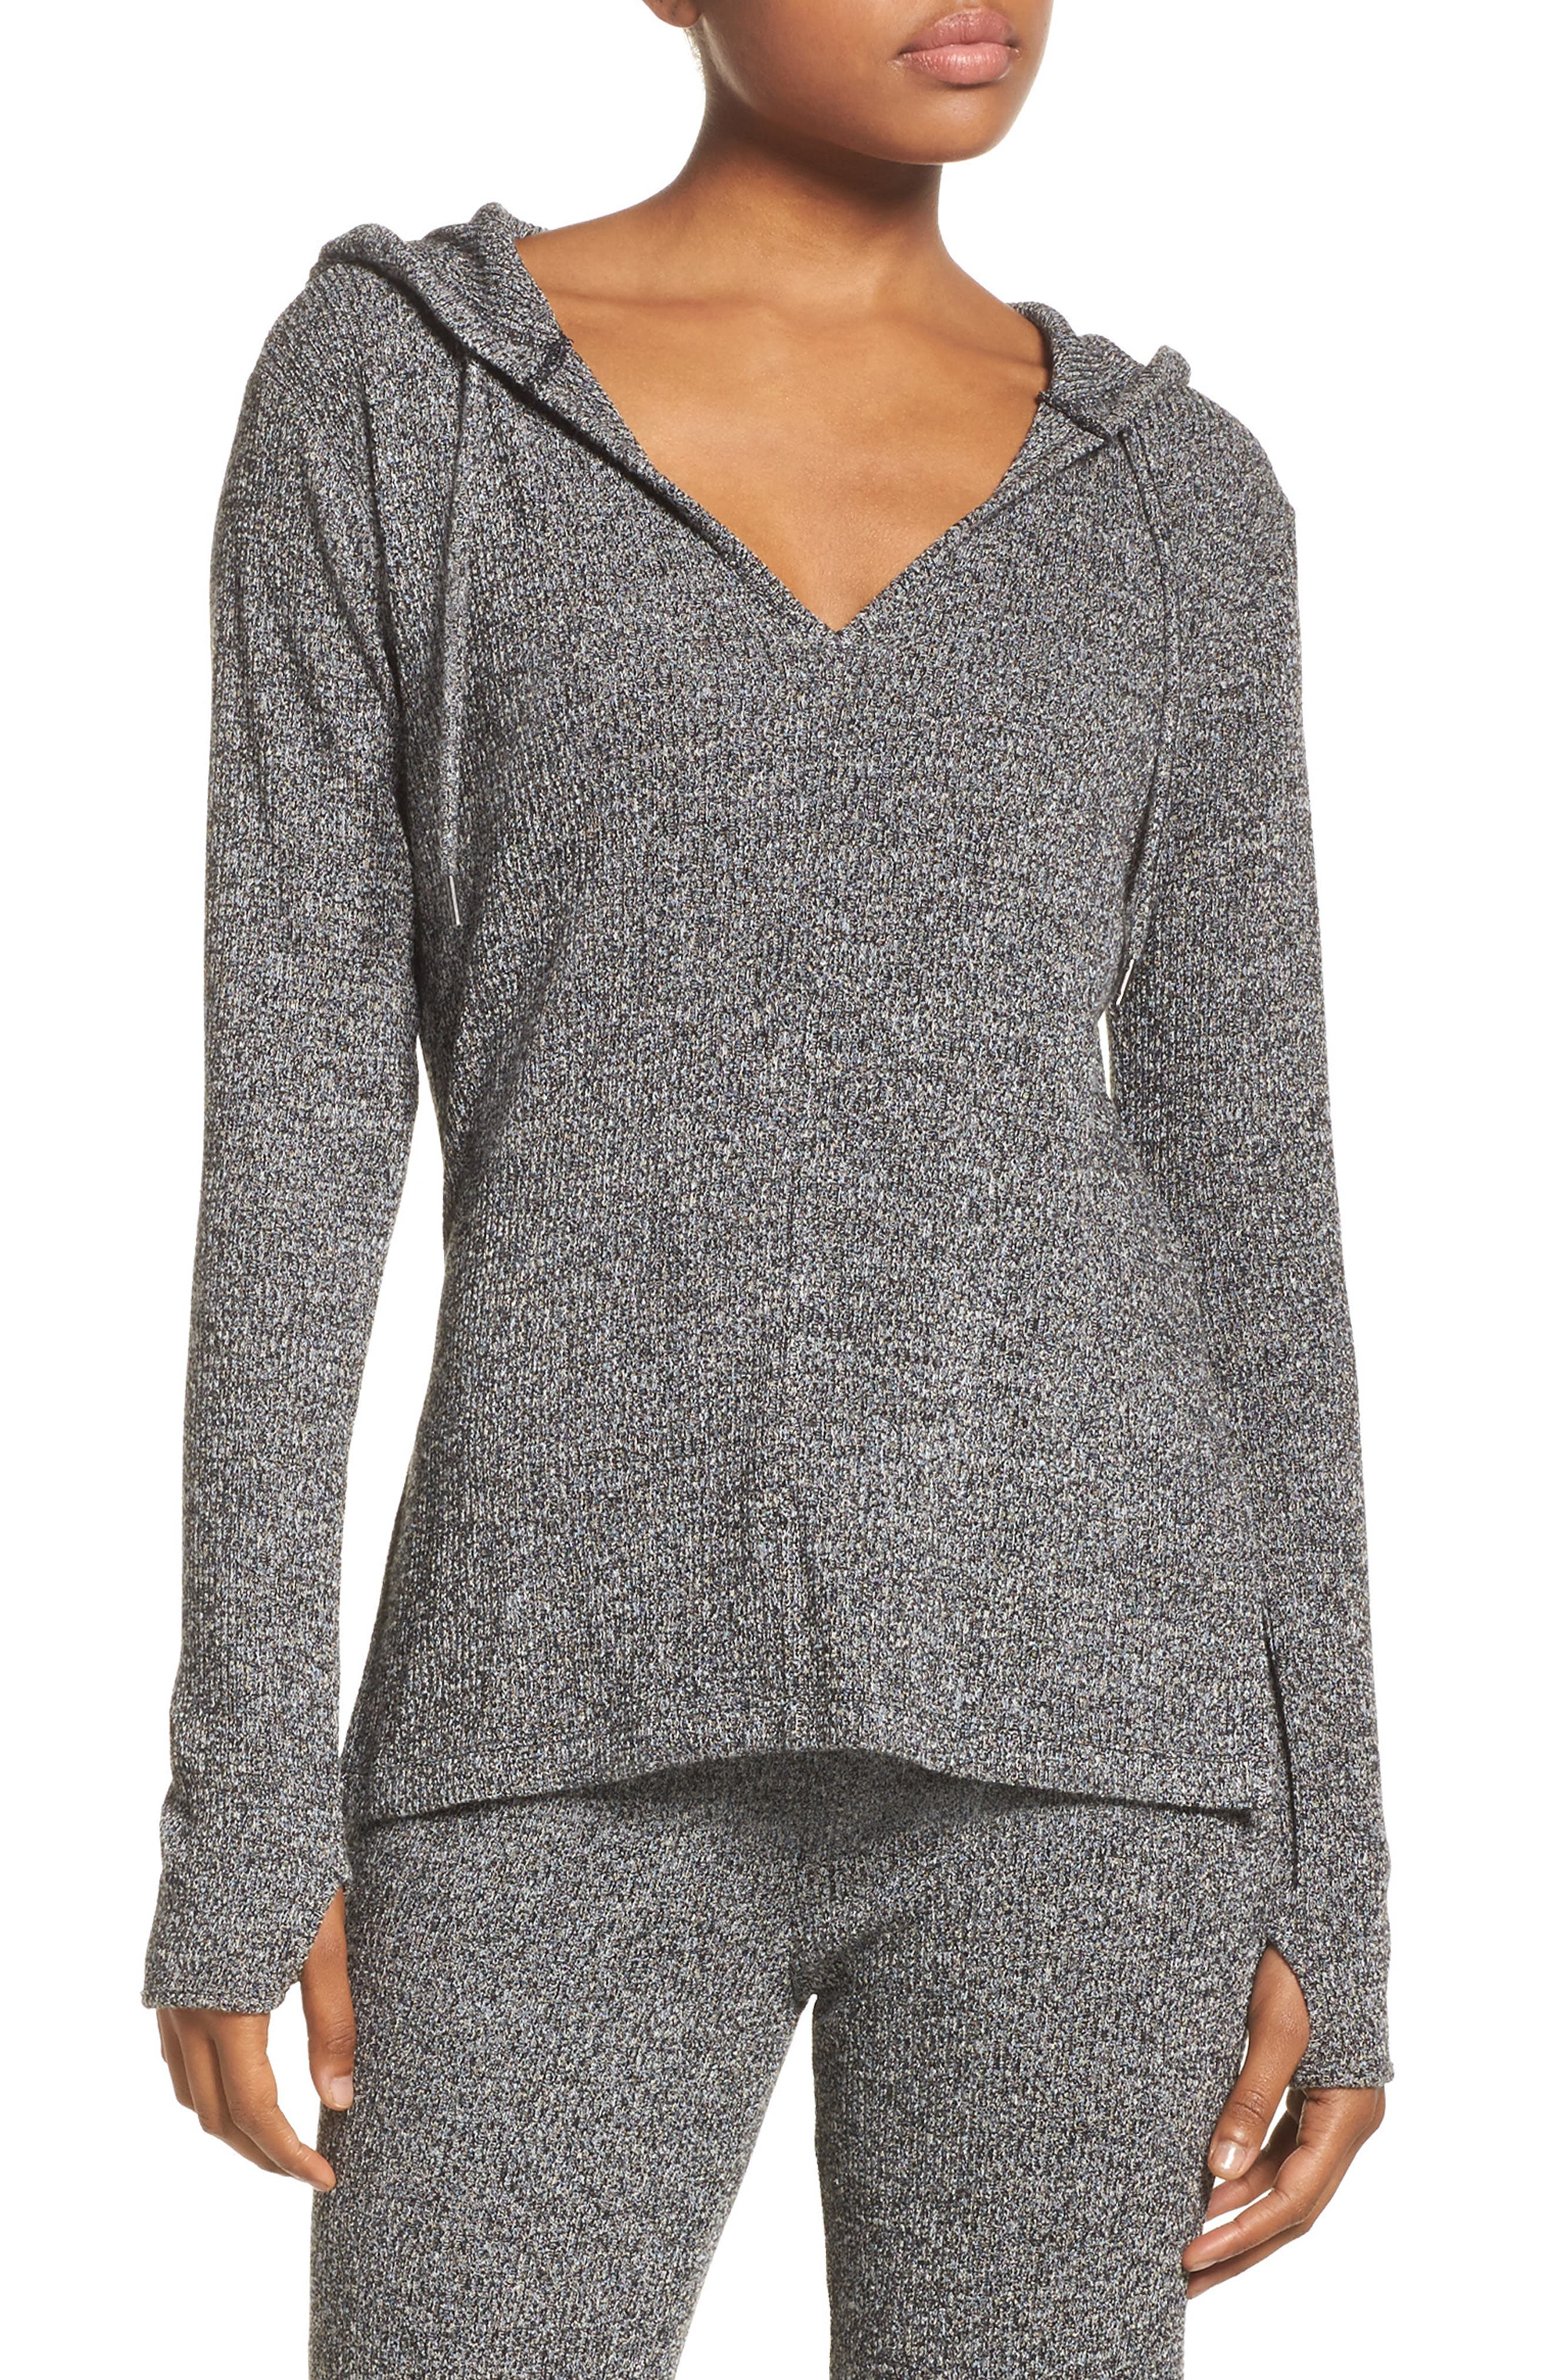 Mantra Hooded Pullover Top,                             Main thumbnail 1, color,                             001